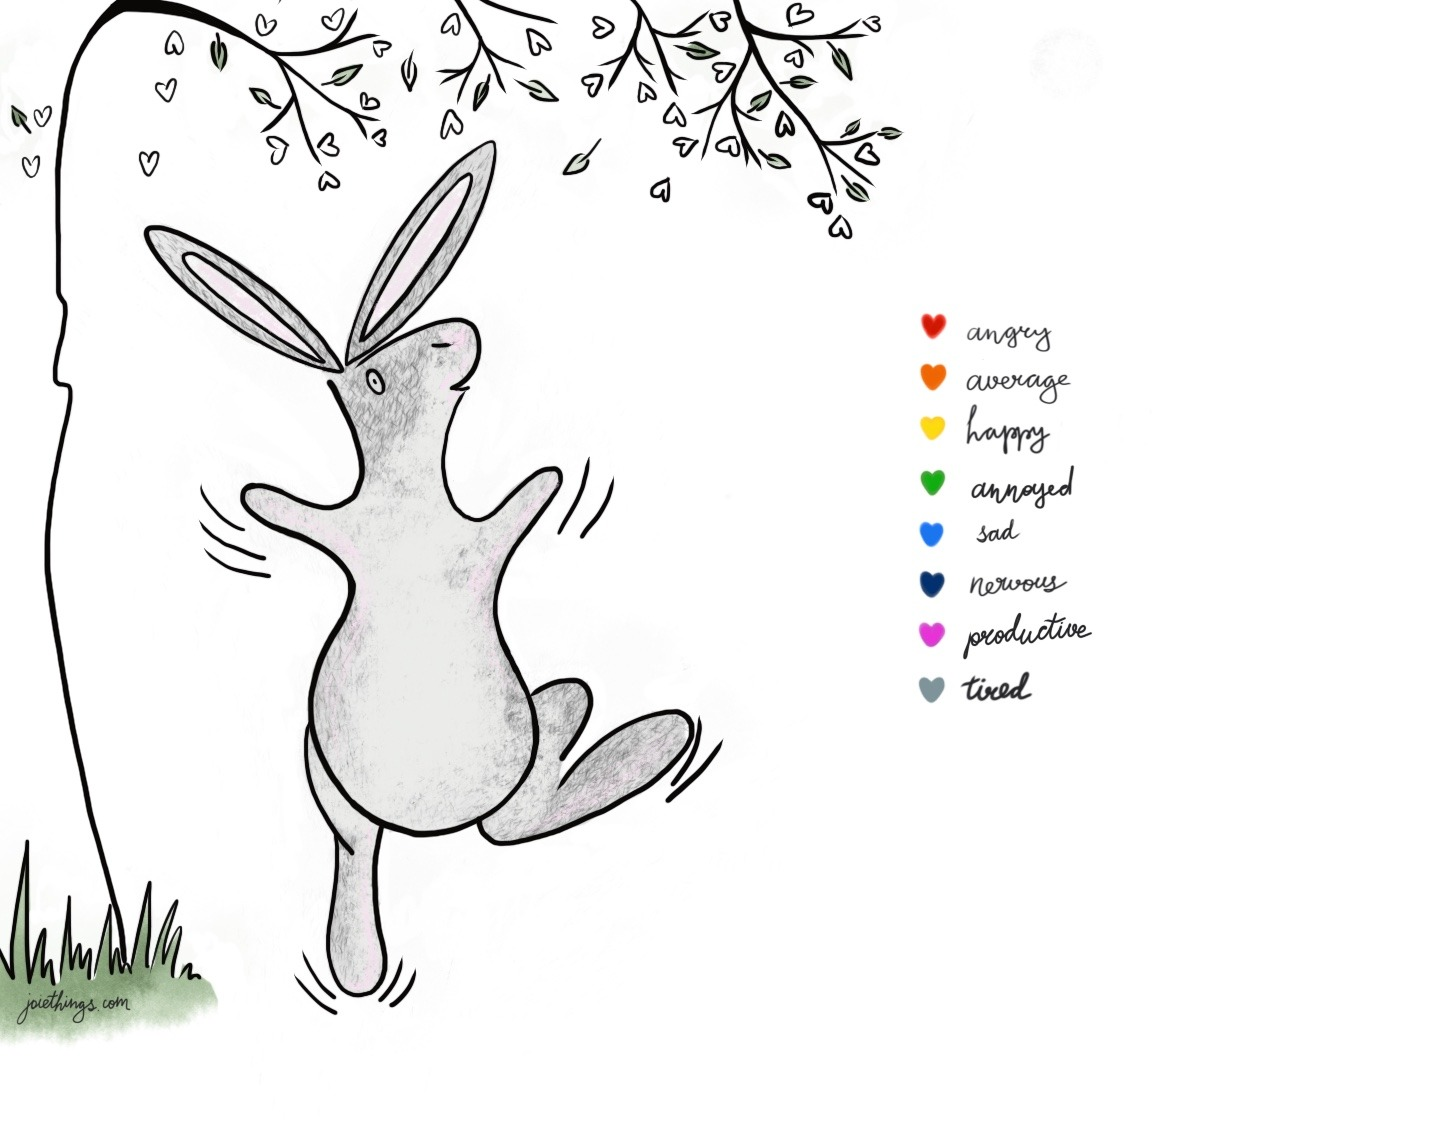 photograph regarding Printable Mood Tracker named Printable bunny temper tracker - joiethings